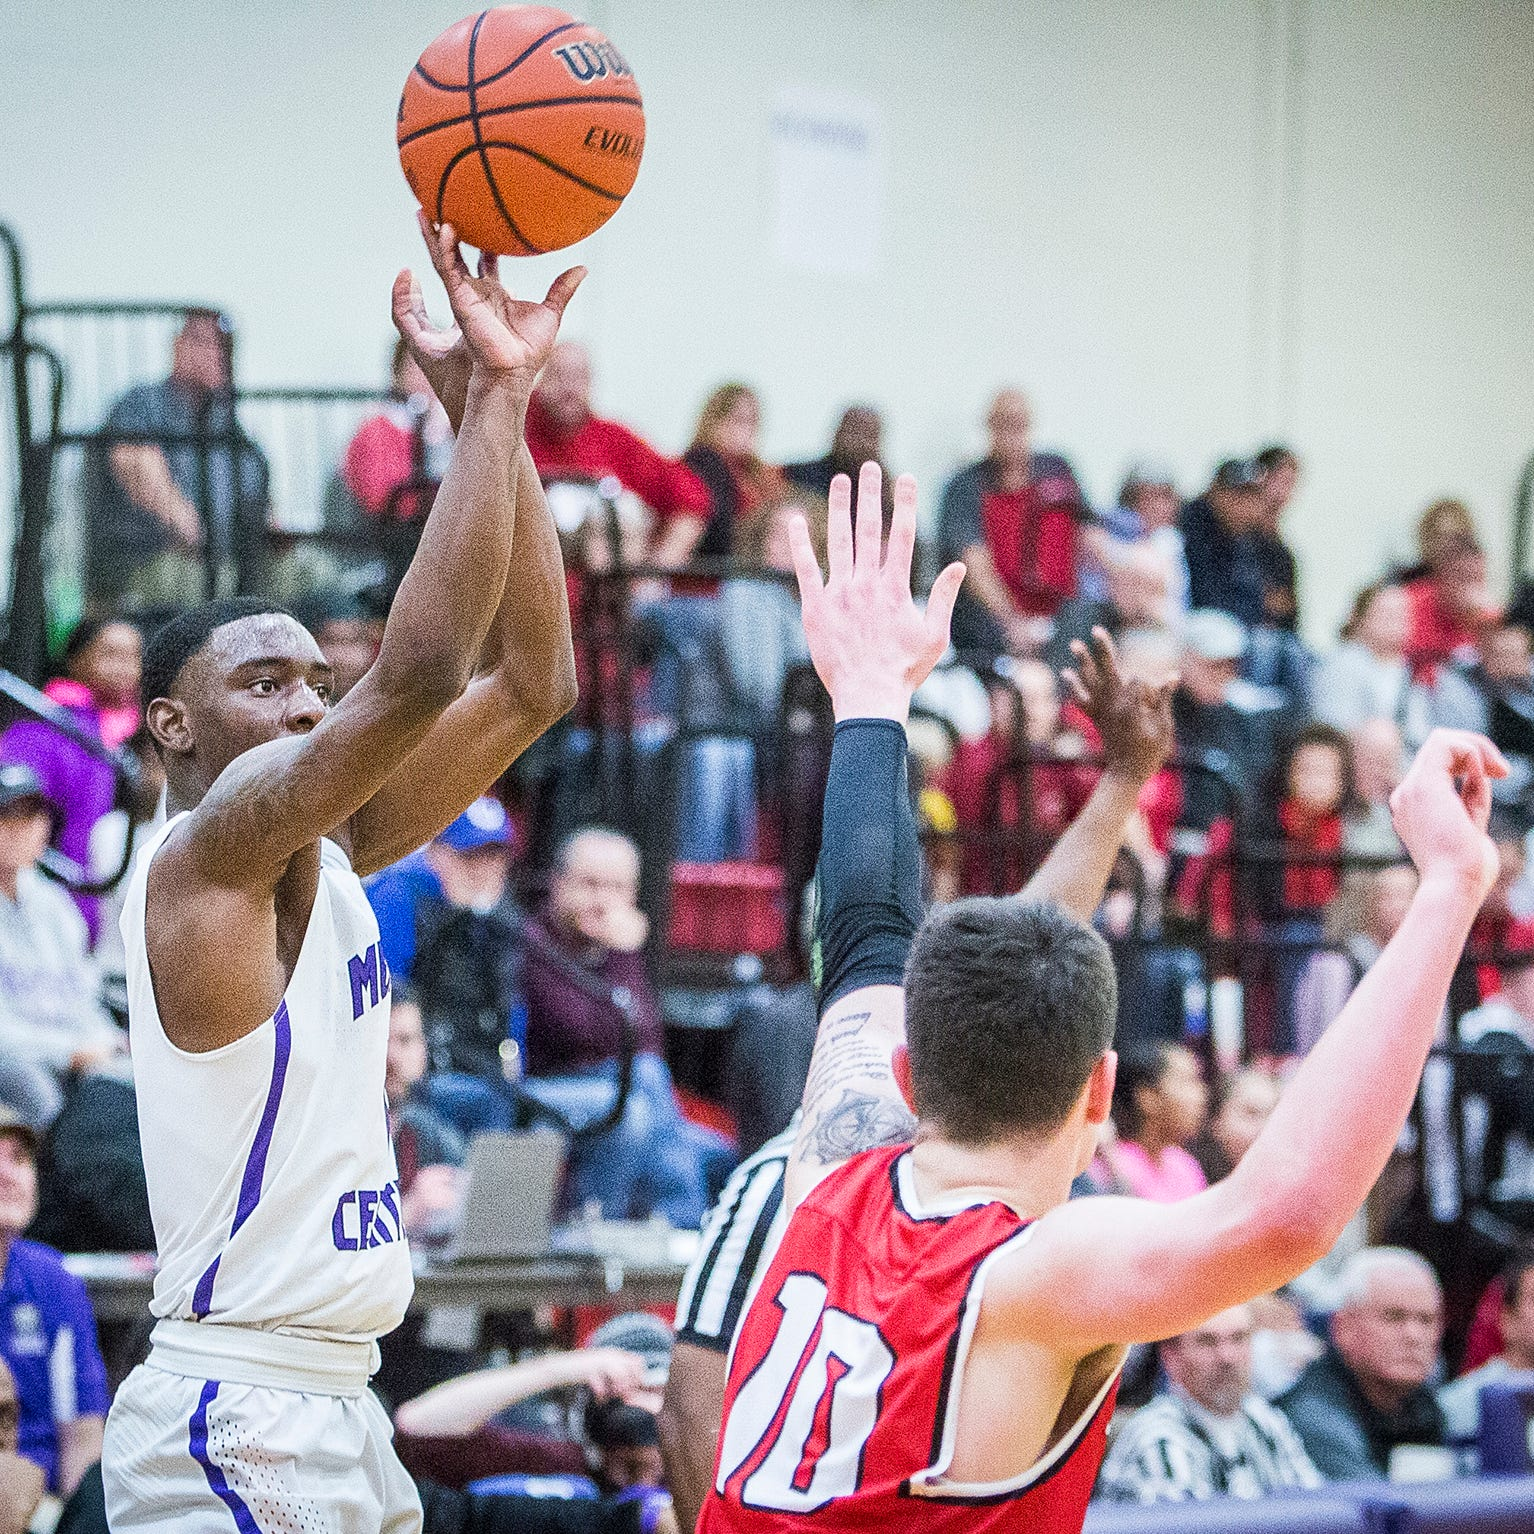 HS hoops rundown: Muncie Central, New Castle stay hot; Cowan gets first win